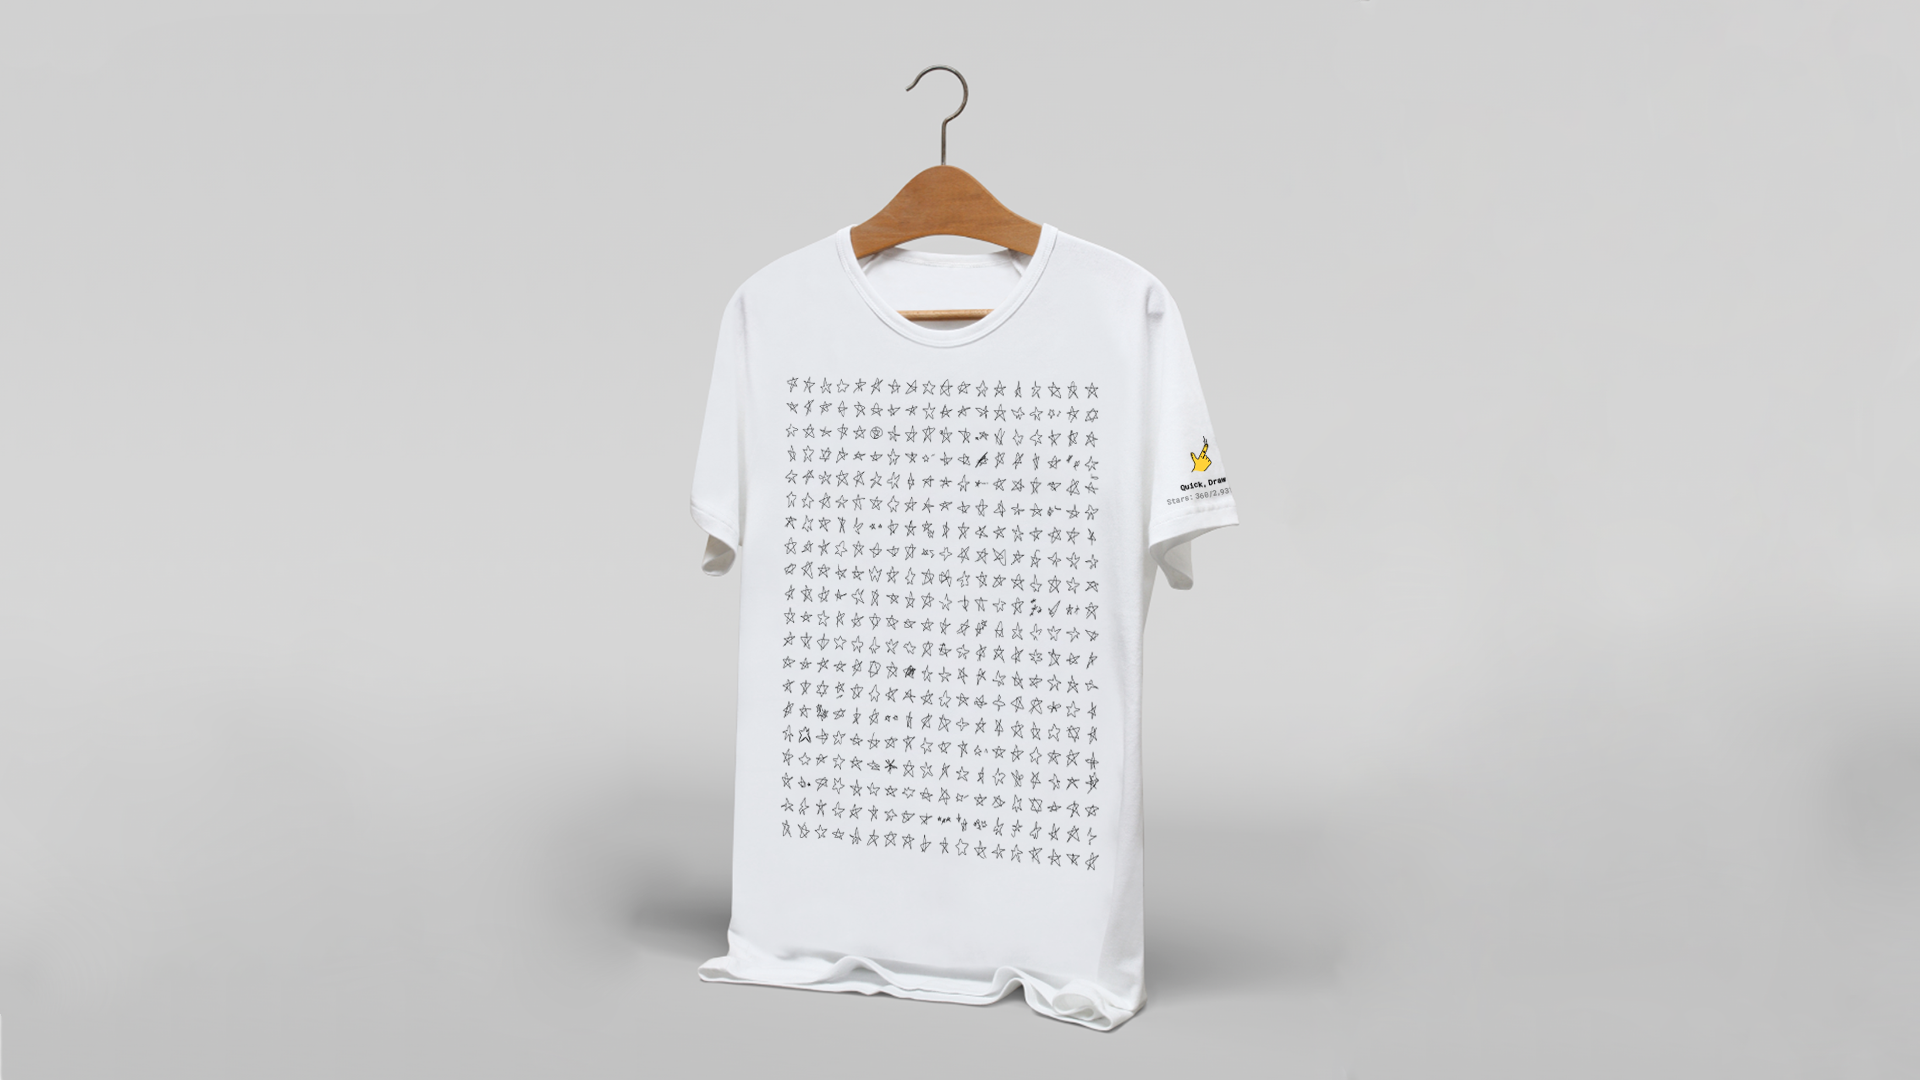 QuickDrawTshirt